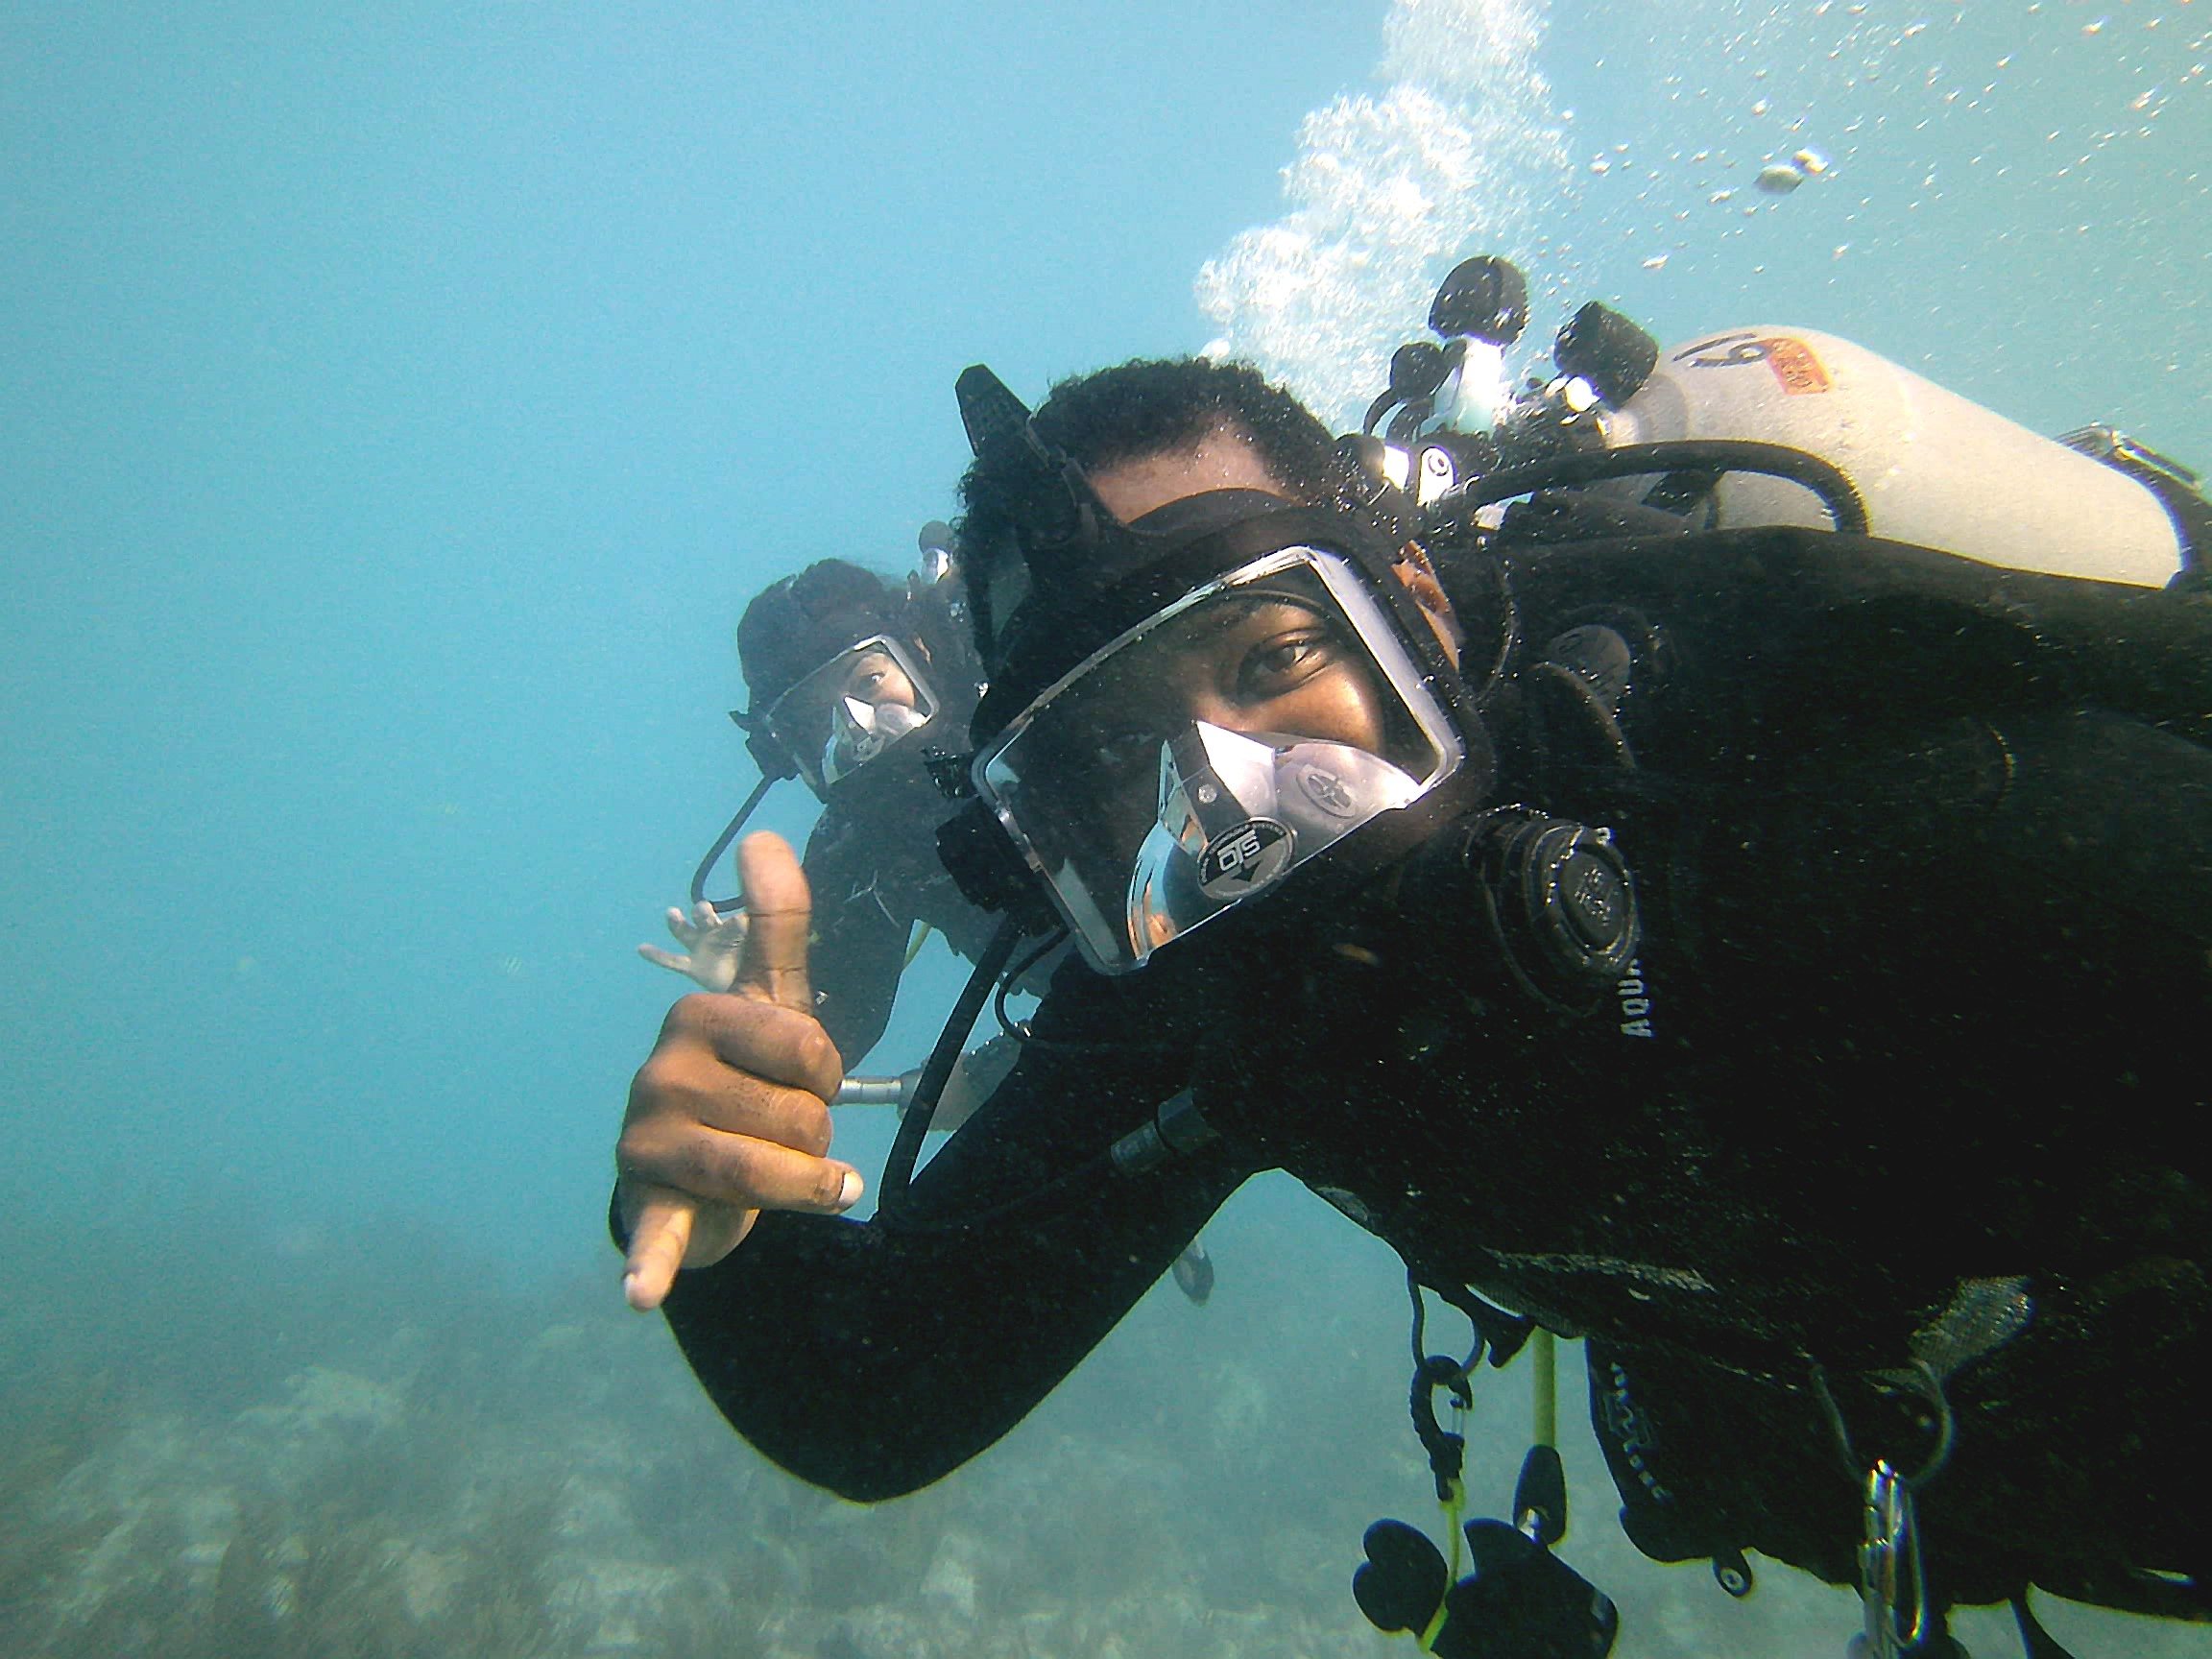 Full Facemask Diving – A Whole New Way To Enjoy The Underwater World